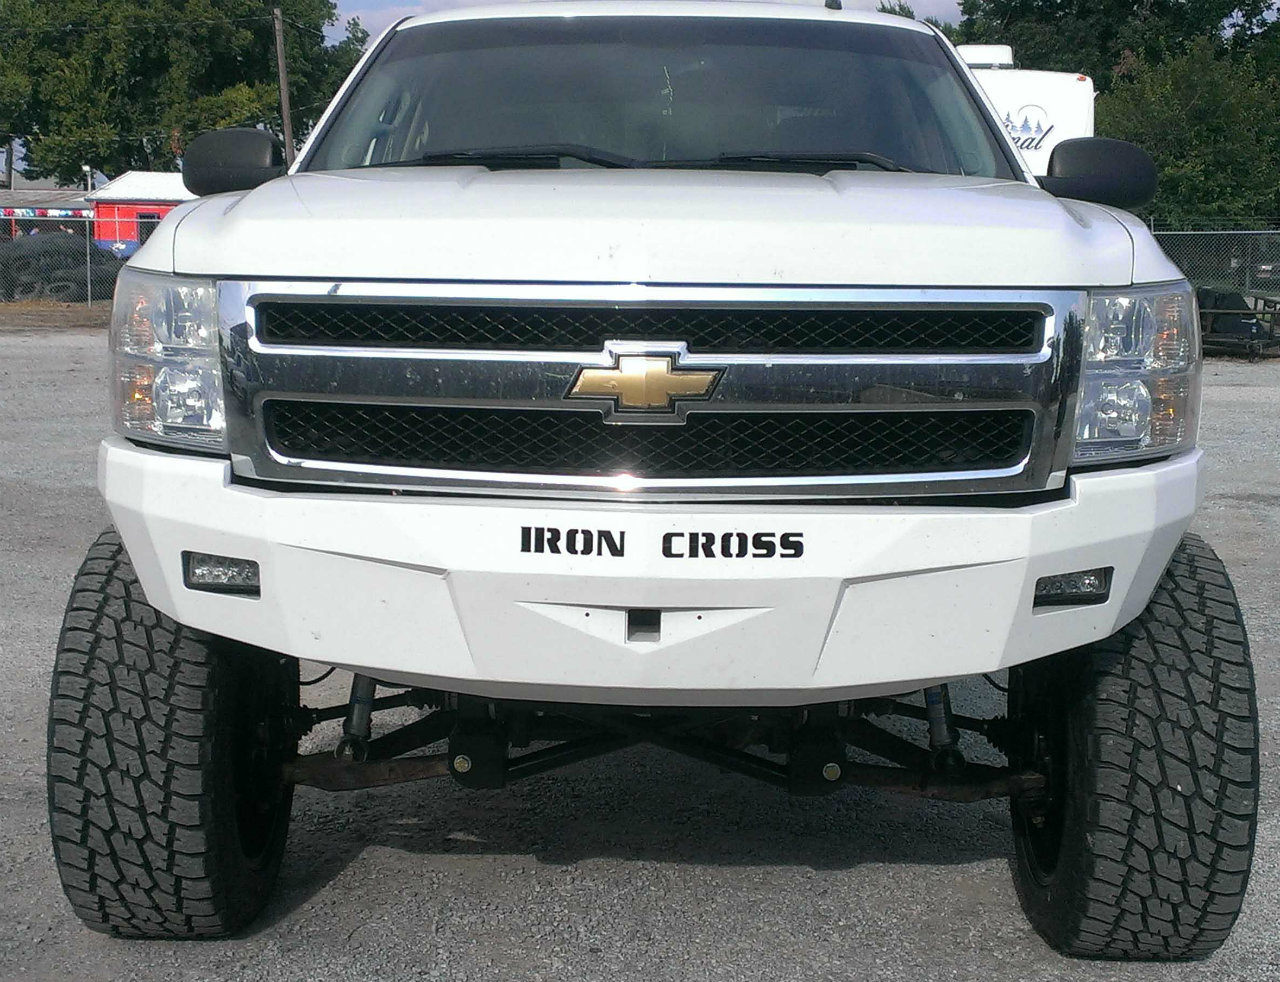 Chevrolet Silverado 1500 Iron Cross Bumper Performance Truck